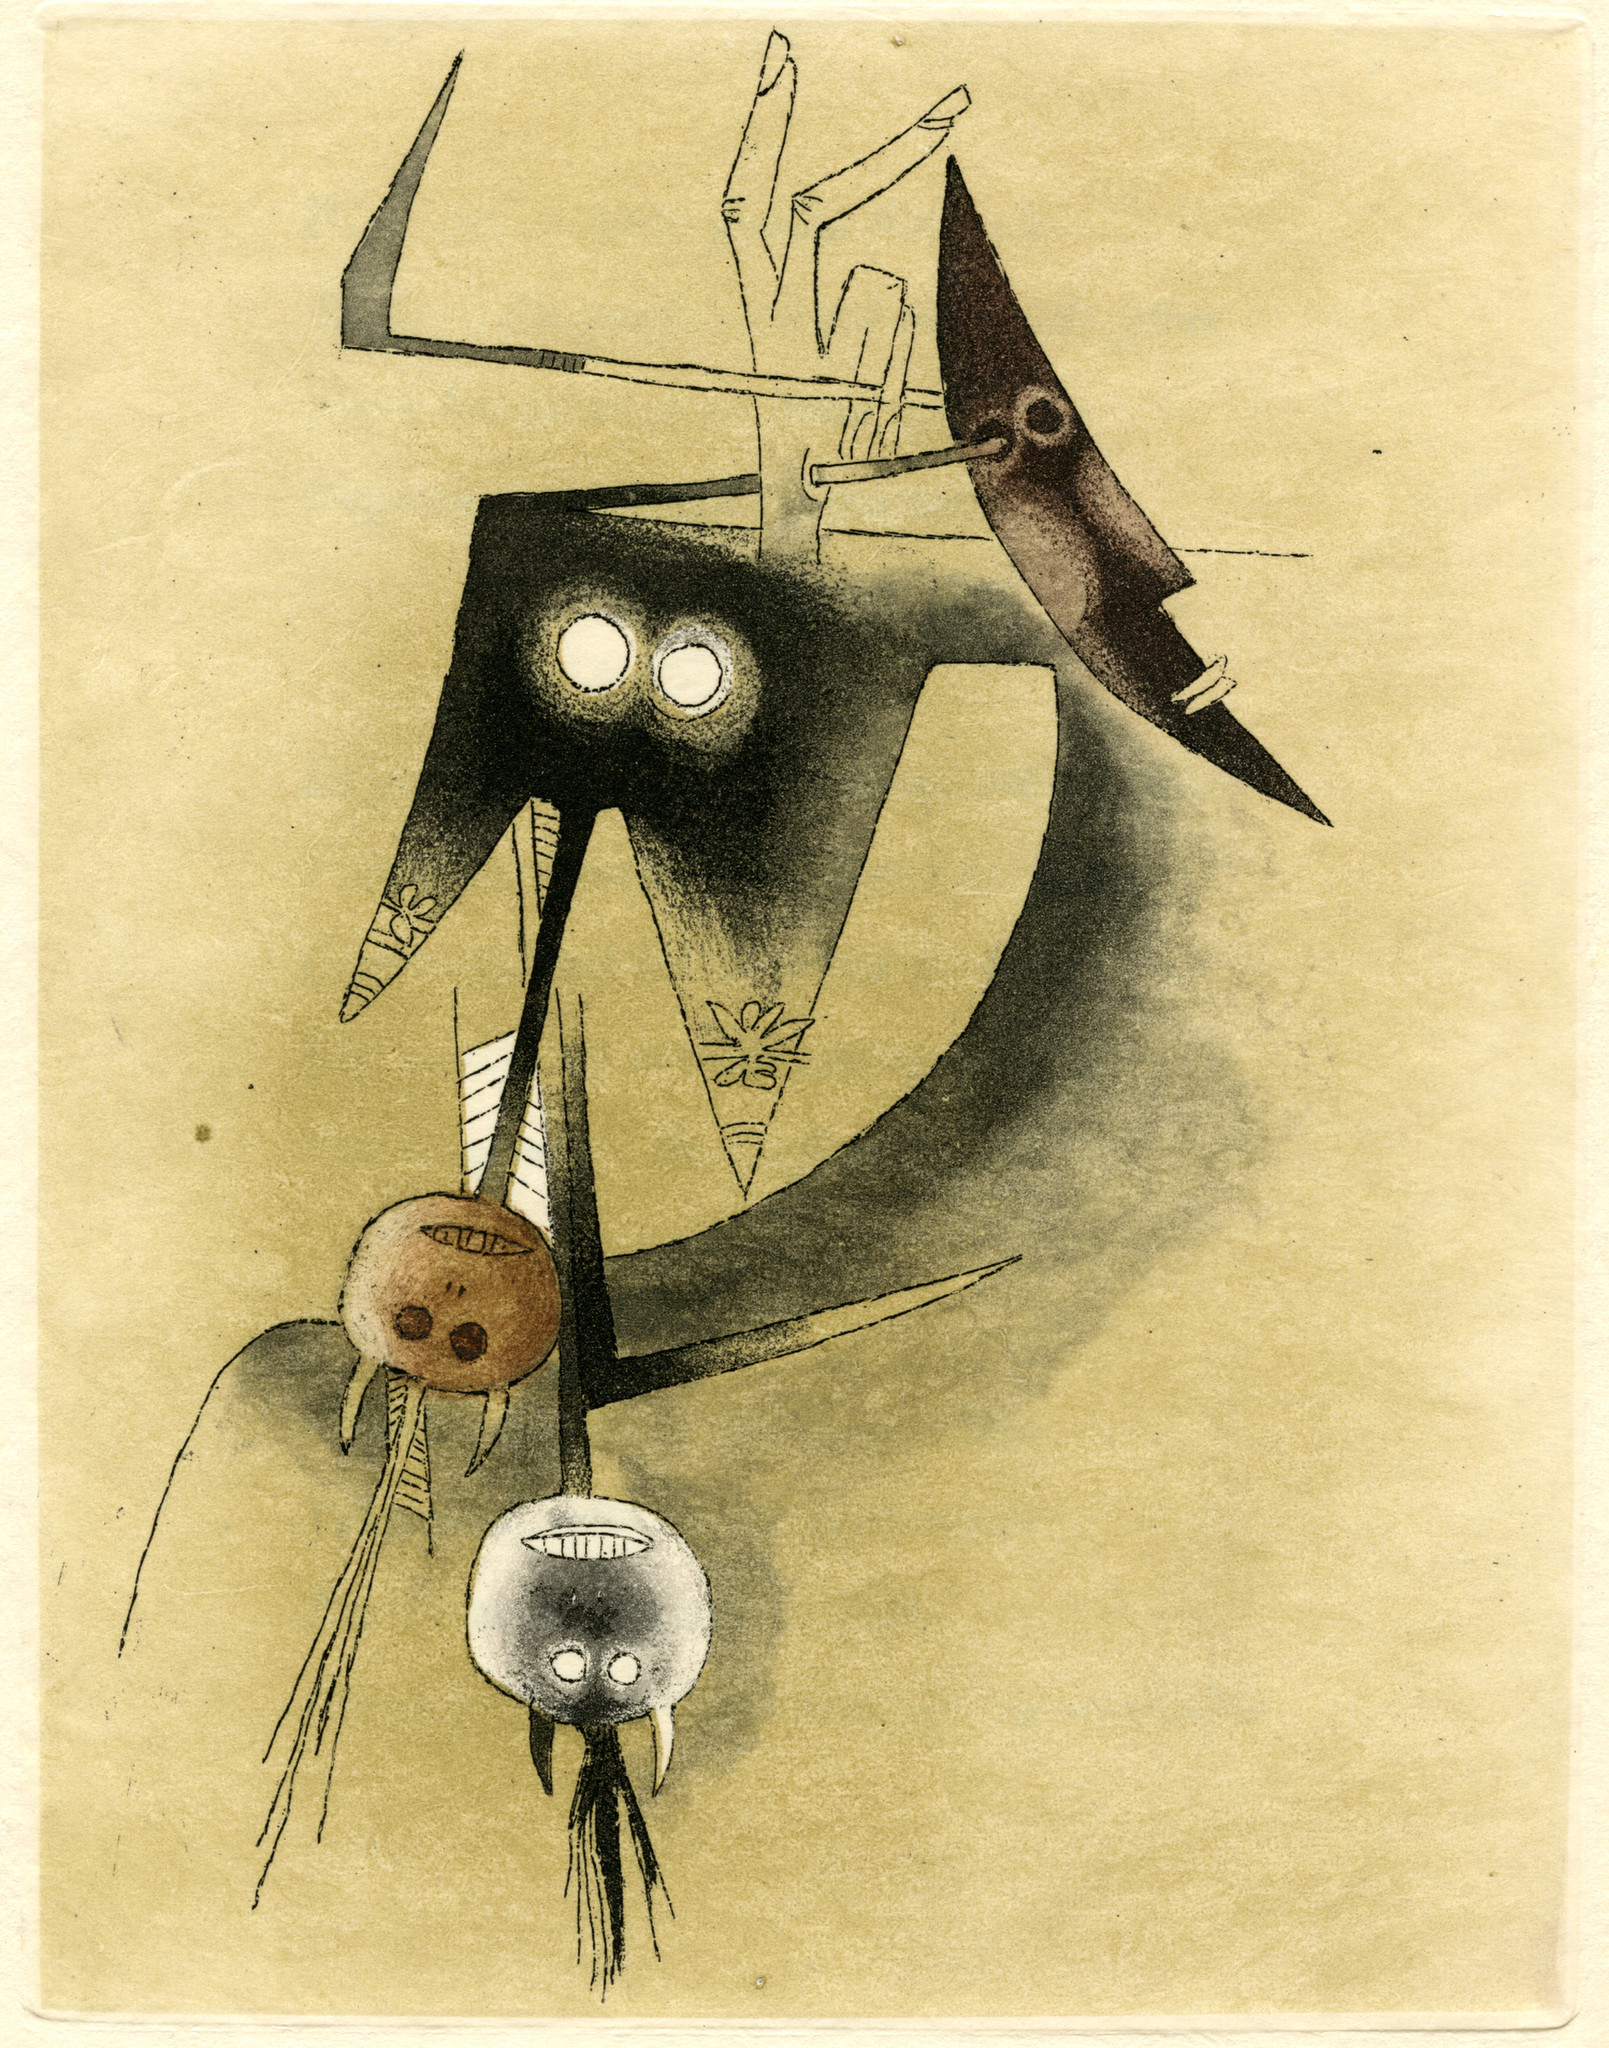 A photograph of the piece Untitled print from Croiseur Noir, ca. 1972. Etching and color aquatint fe